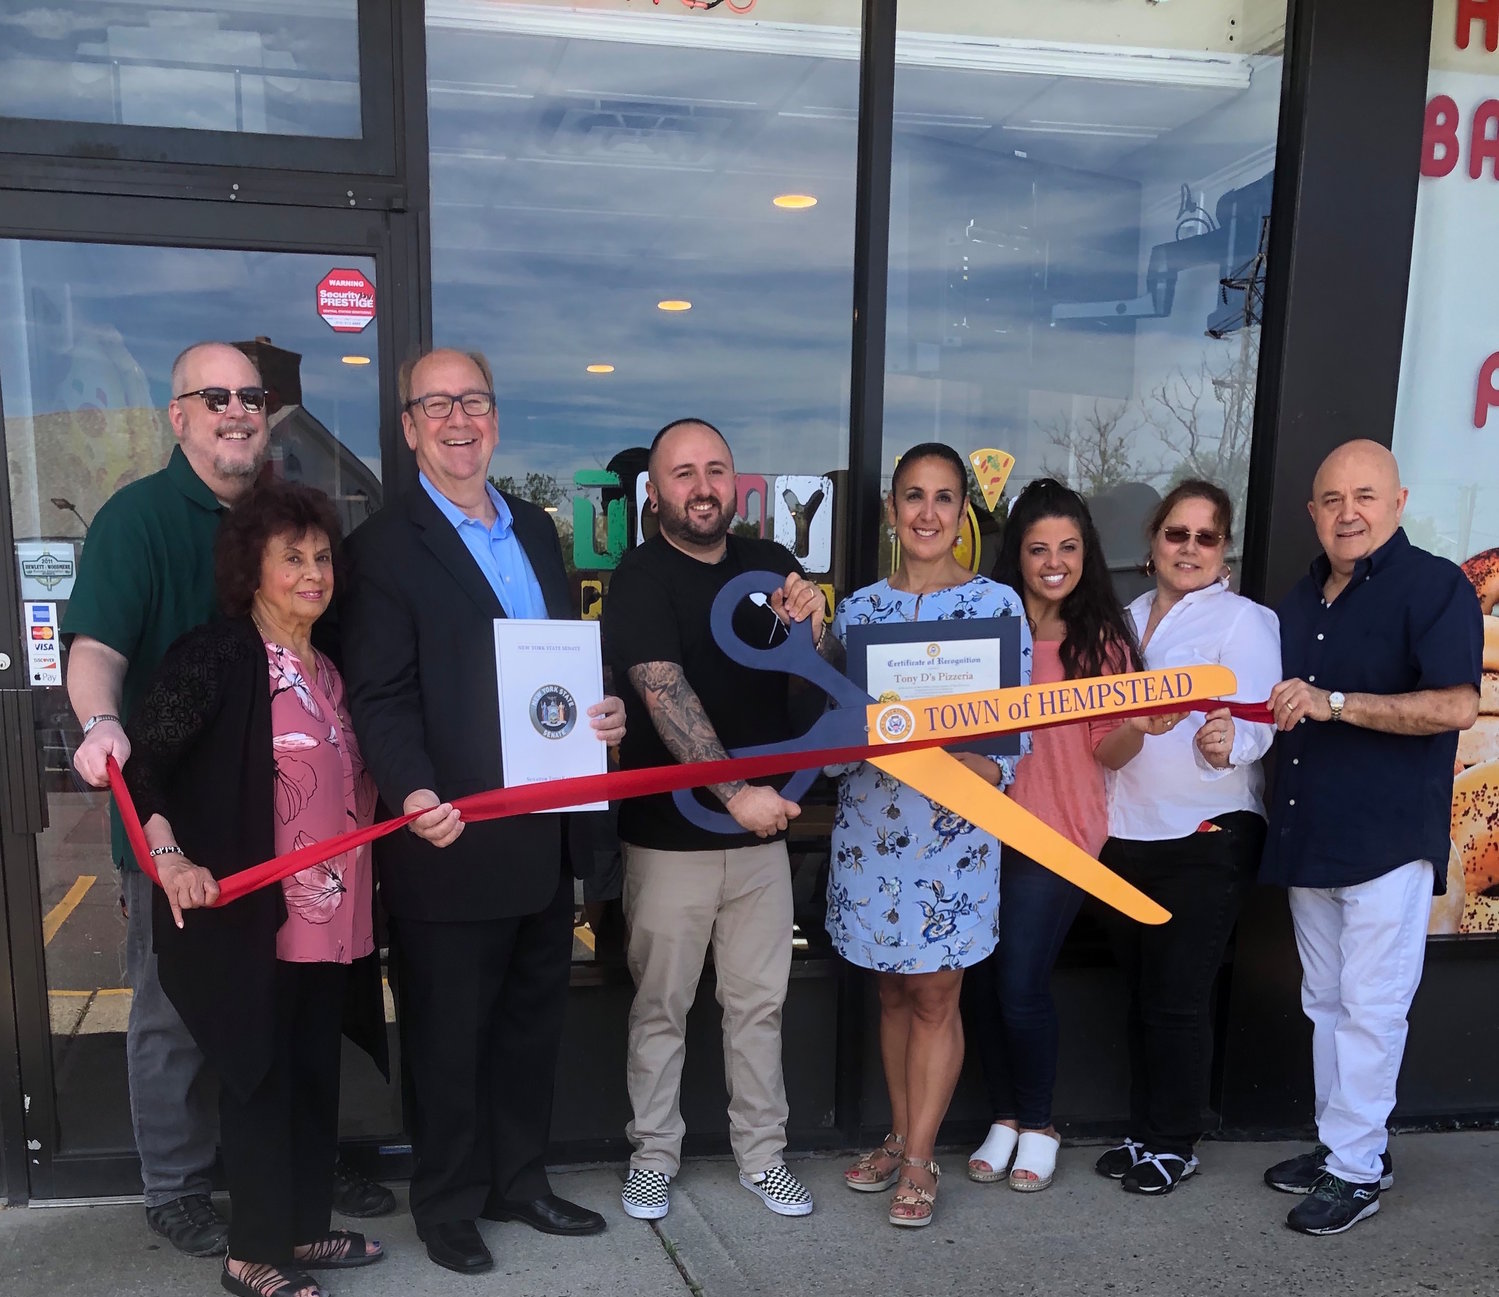 Tony D's Pizza is open in Hewlett. From left were HWBA Vice President John Roblin, Woodmere resident Ann DeMichael, HWBA President David Friedman, owner Anthony Divella, Town Clerk Sylvia Cabana, Rosemarie Divella, and Antoinette and Mario Divella, Anthony's parents.